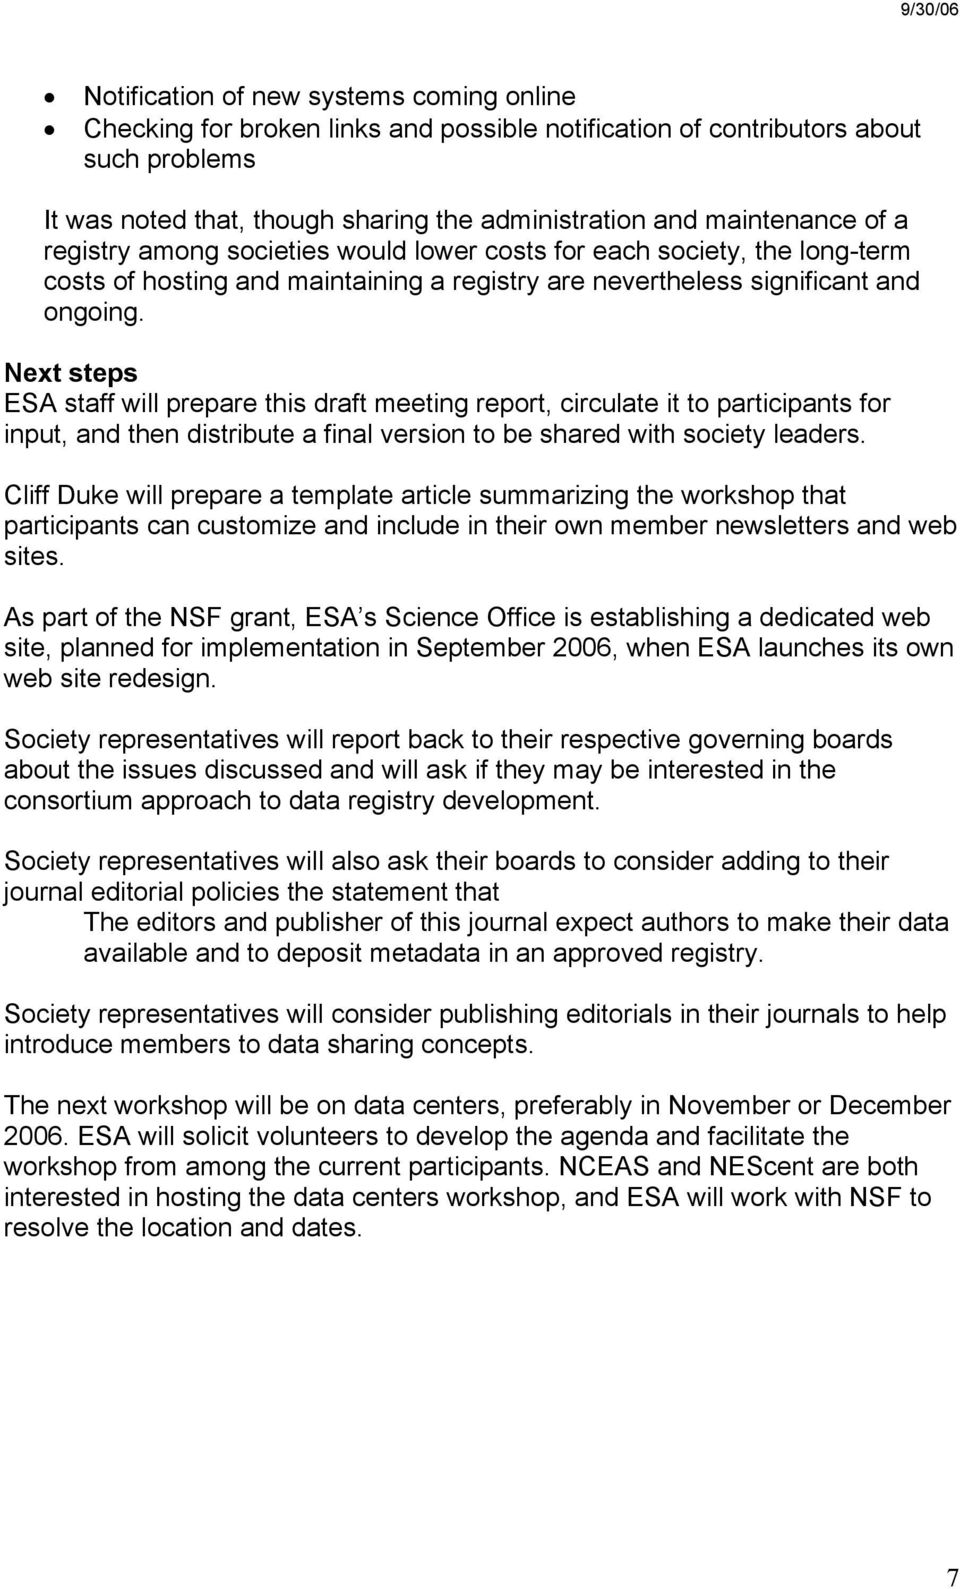 Next steps ESA staff will prepare this draft meeting report, circulate it to participants for input, and then distribute a final version to be shared with society leaders.